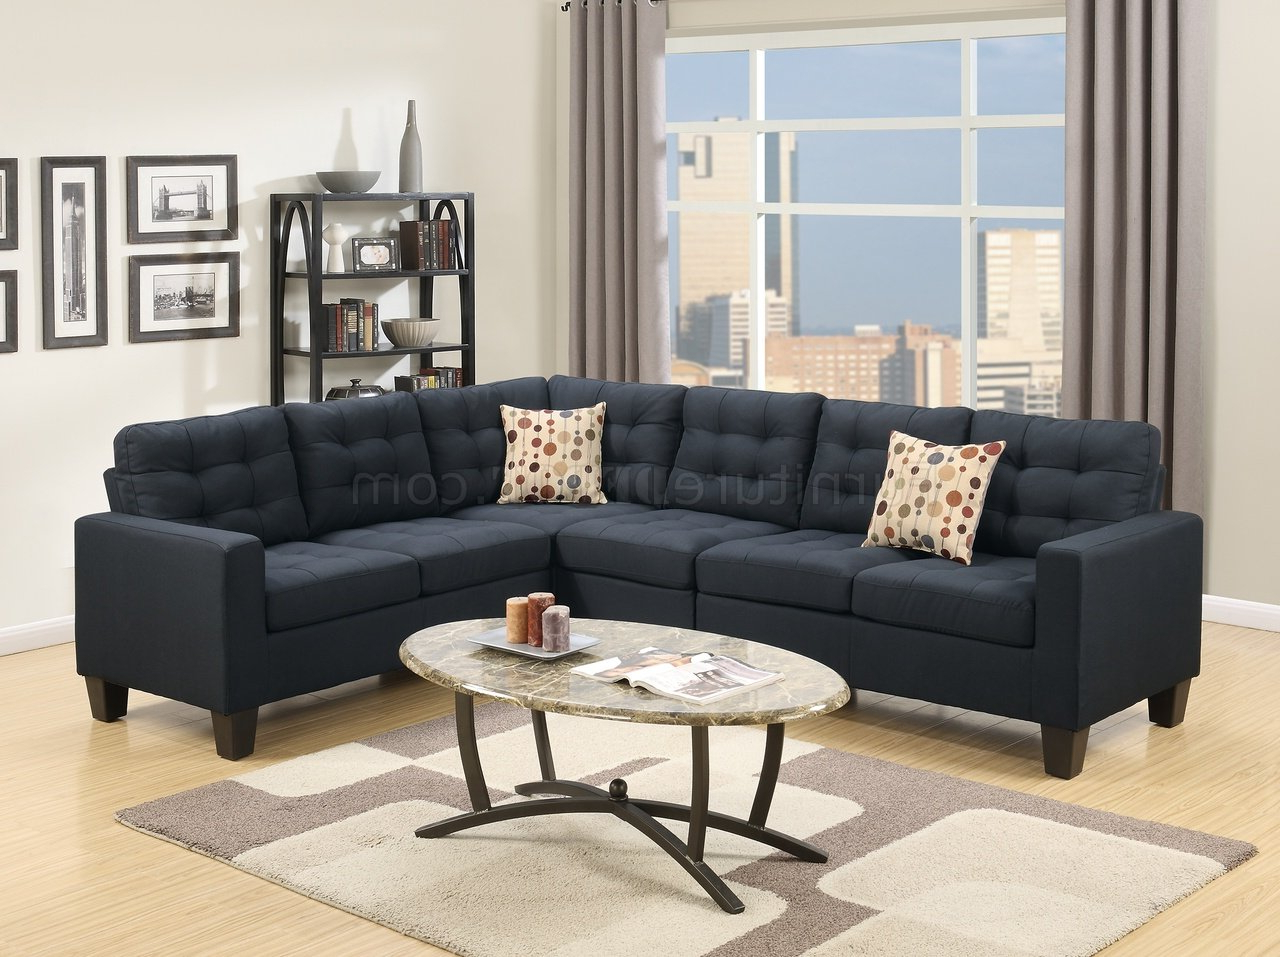 F6937 Sectional Sofa In Black Linen Like Fabricboss Pertaining To Well Known Polyfiber Linen Fabric Sectional Sofas Dark Gray (View 13 of 20)